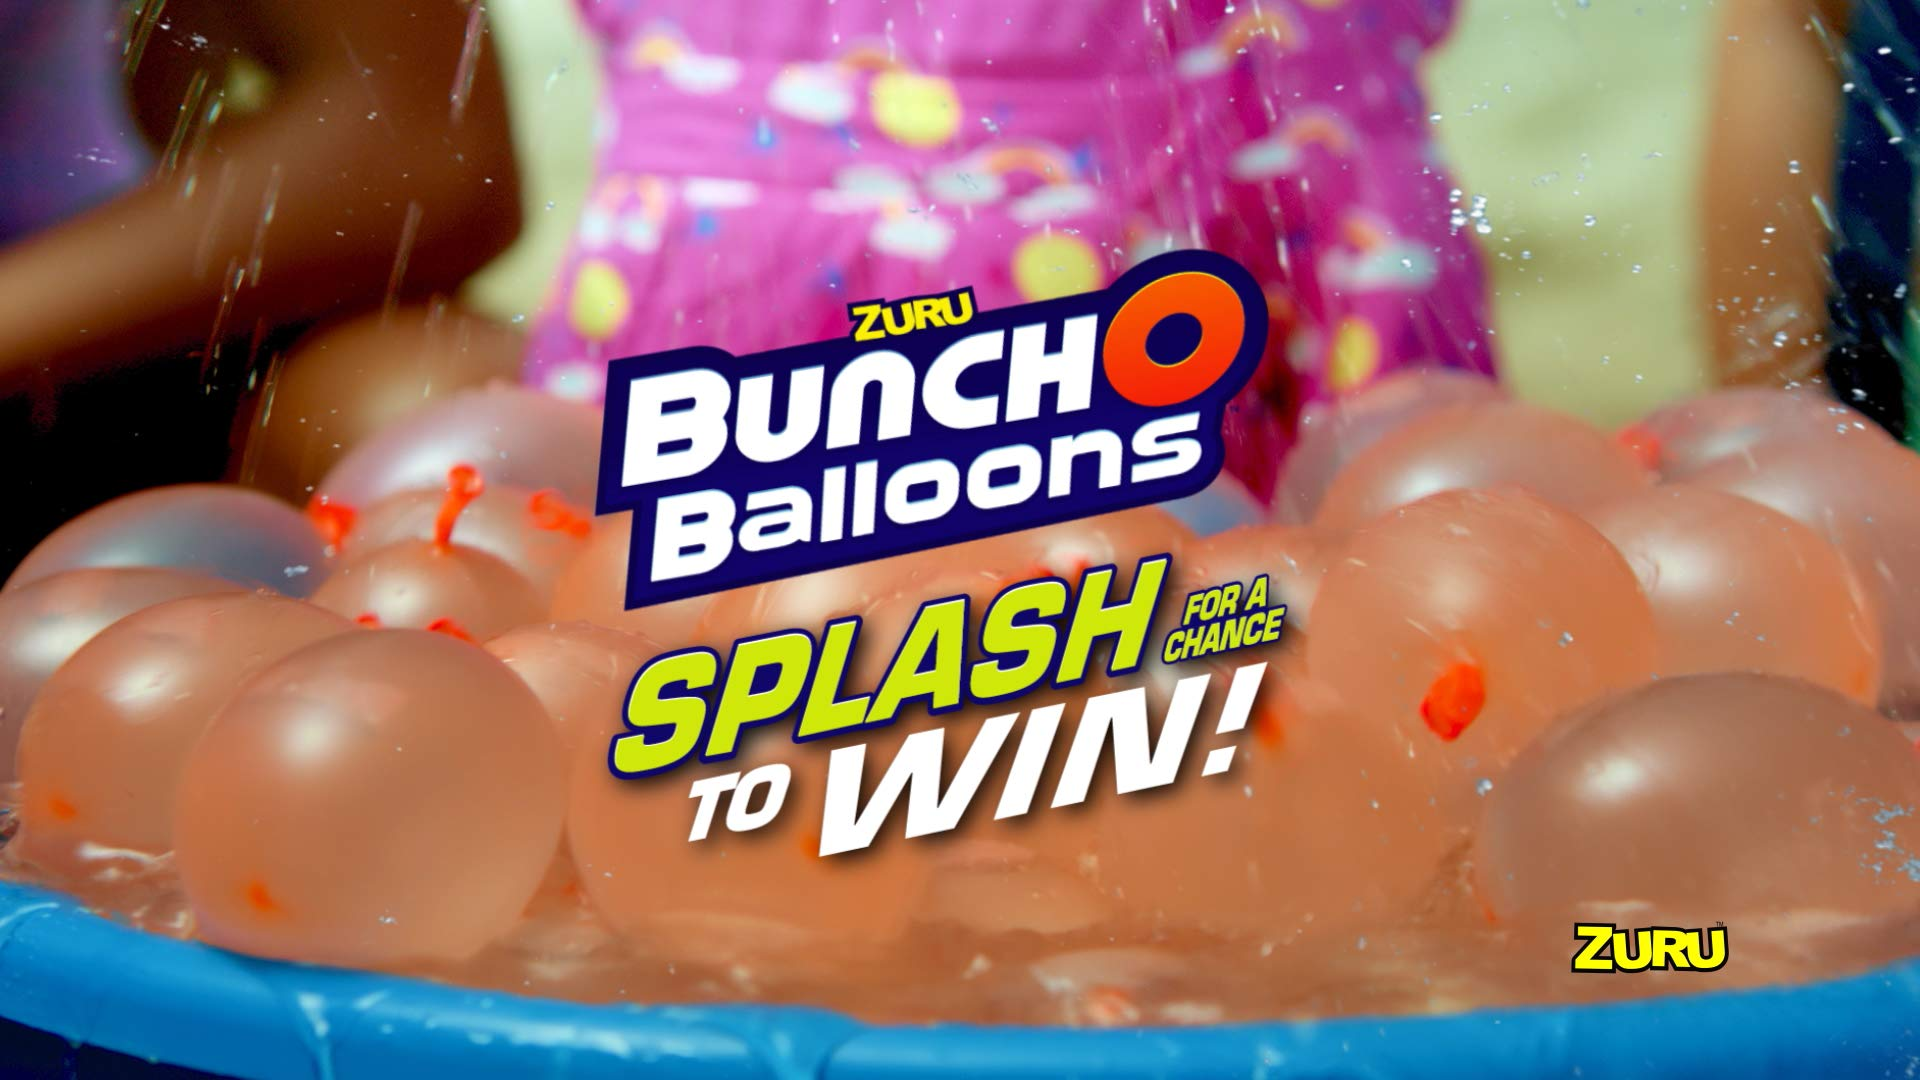 Bunch O Balloons - 350 Water Balloons (10 Pack) Rapid-Filling Self-Sealing Water Balloons (Amazon Exclusive) by Zuru by Bunch O Balloons (Image #3)